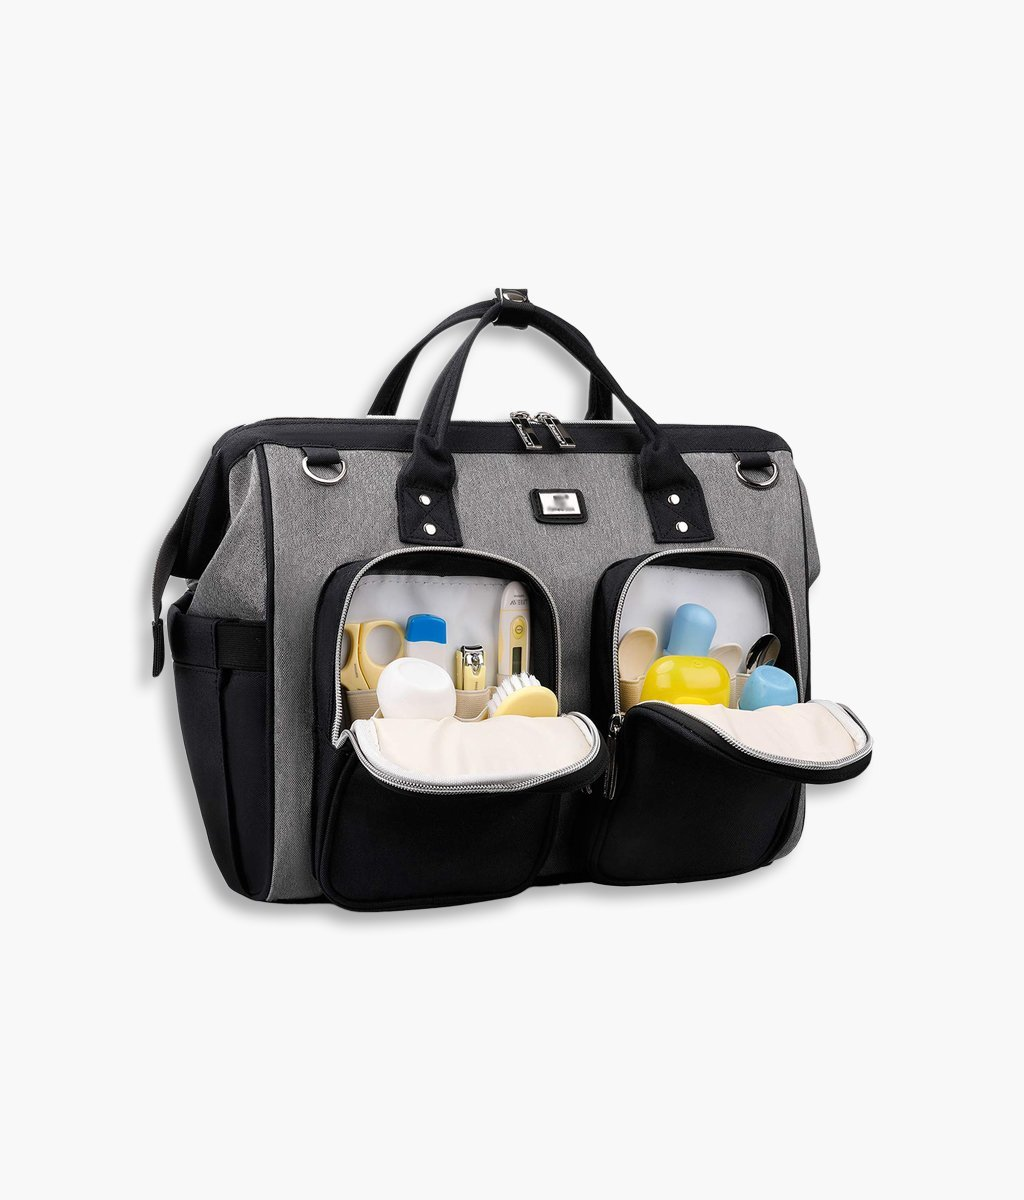 Diaper Bag Tote with Stroller Straps